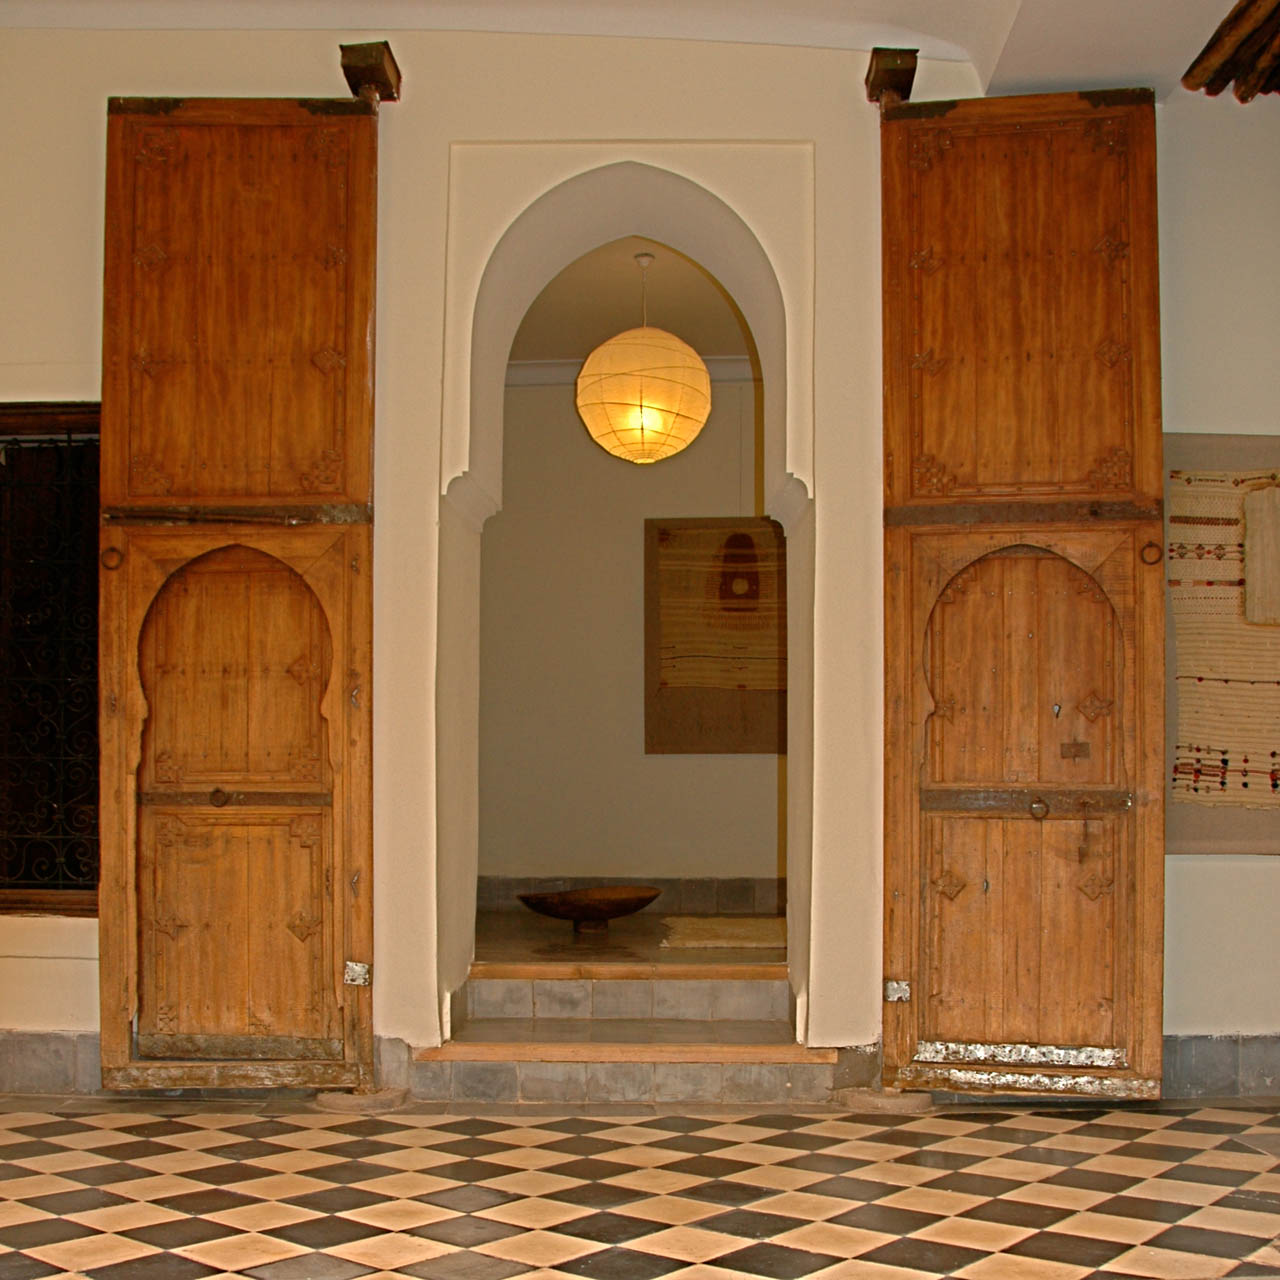 Doors to the bedroom